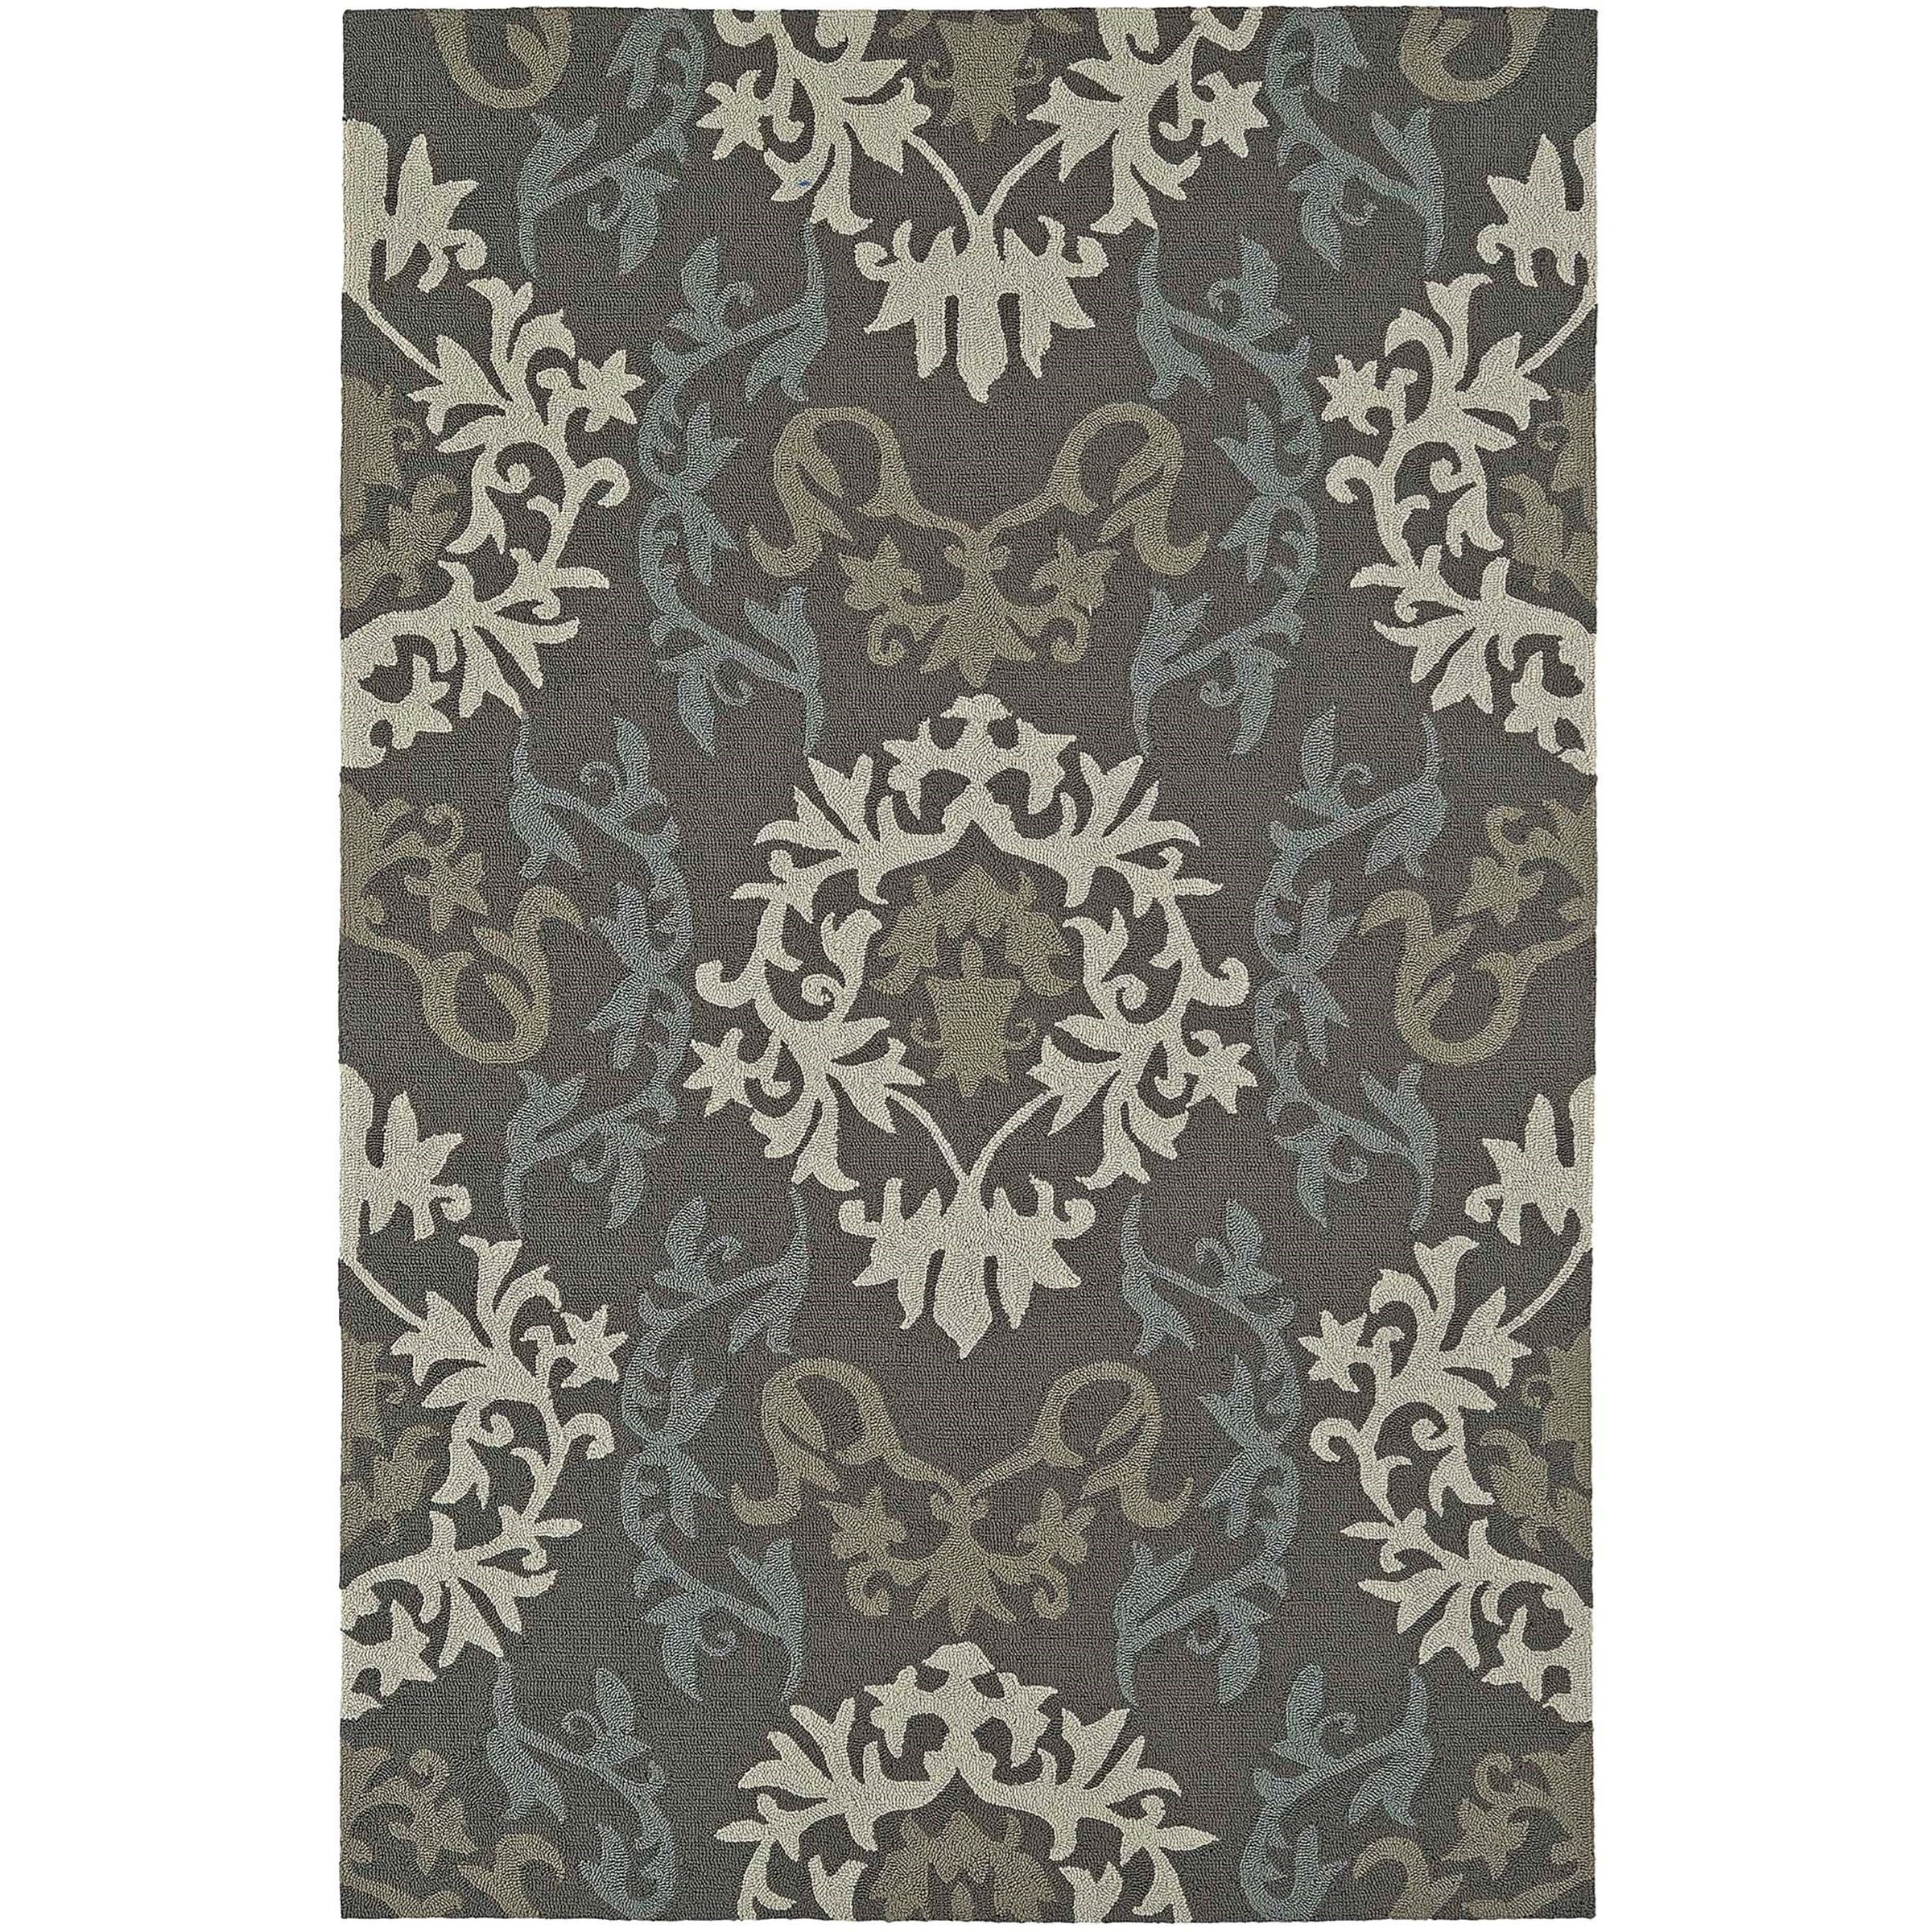 Dalyn Cabana Graphite 9'X13' Rug - Item Number: CN2GR9X13